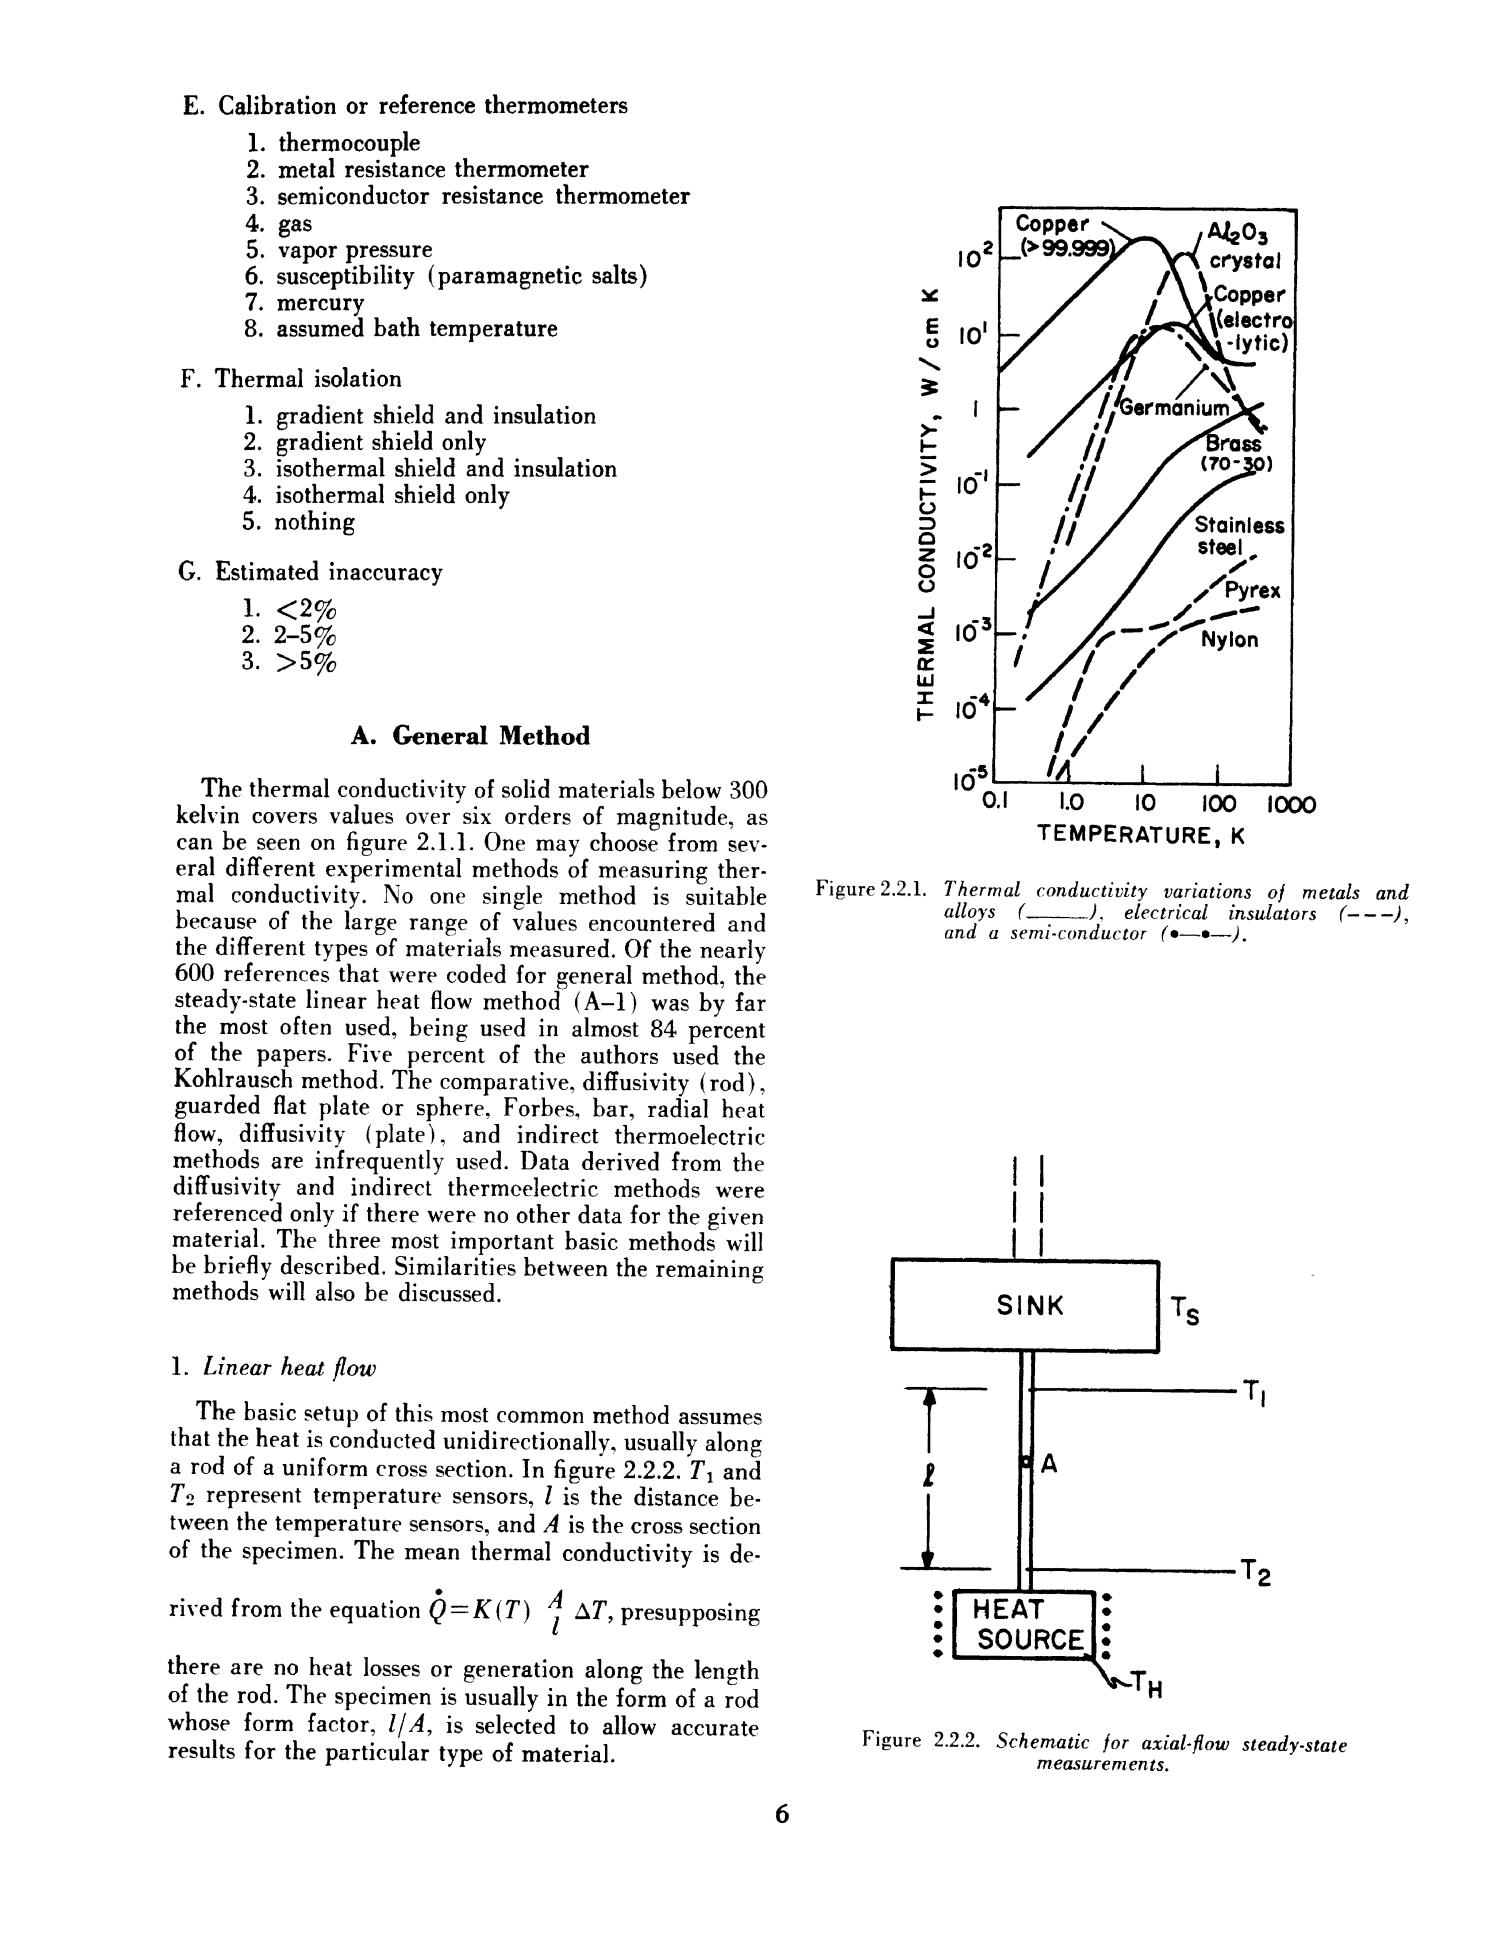 Thermal Conductivity Of Solids At Room Temperature And Below A Figure 3 Sensor Schematic Review Compilation The Literature Page 6 Digital Library